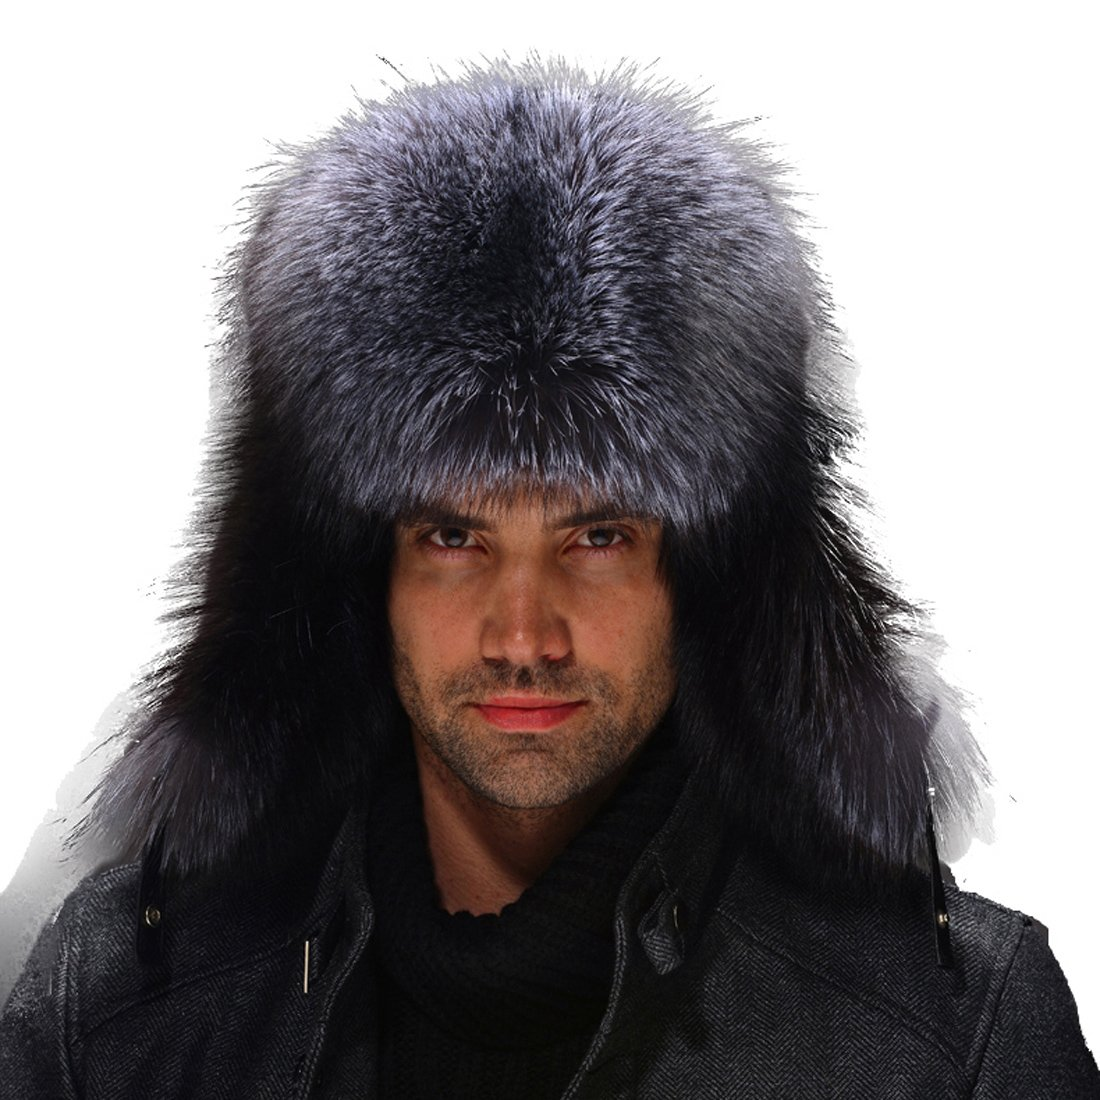 URSFUR Silver Fox Fur & Leather Russian Ushanka Hat (One Size, Silver Fox Natural Color) by URSFUR